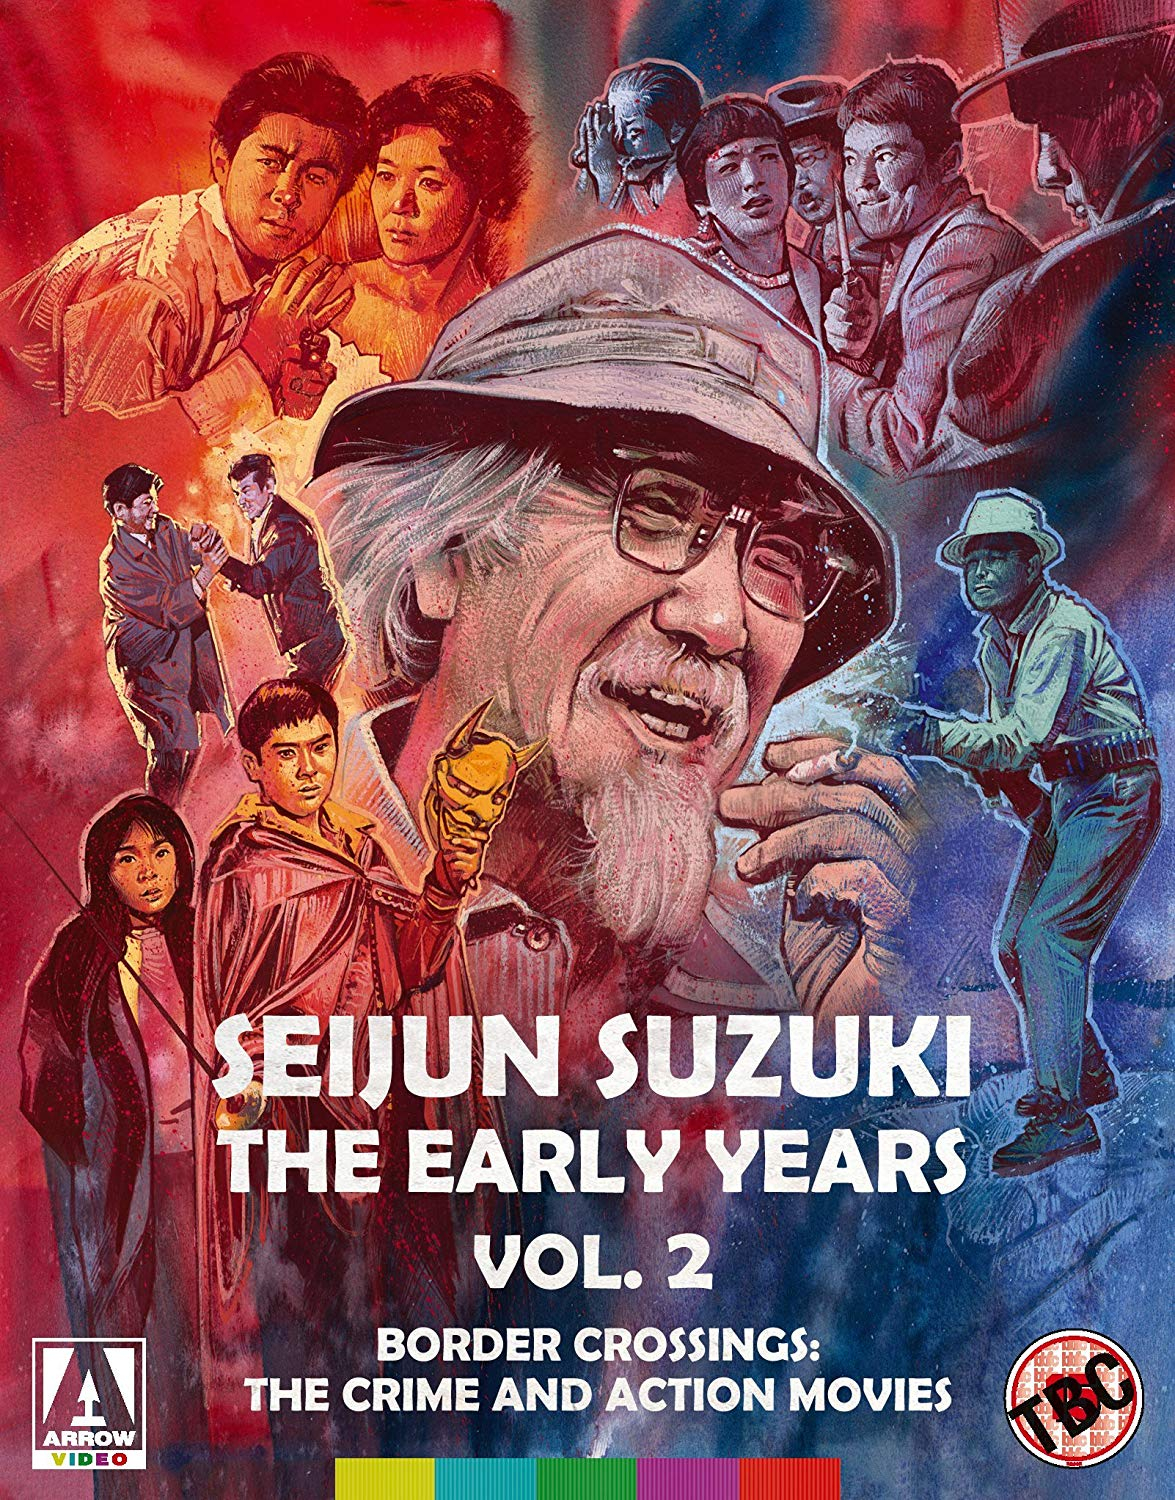 Buy Seijun Suzuki: The Early Years Vol. 2 (Dual Format Edition Box Set)